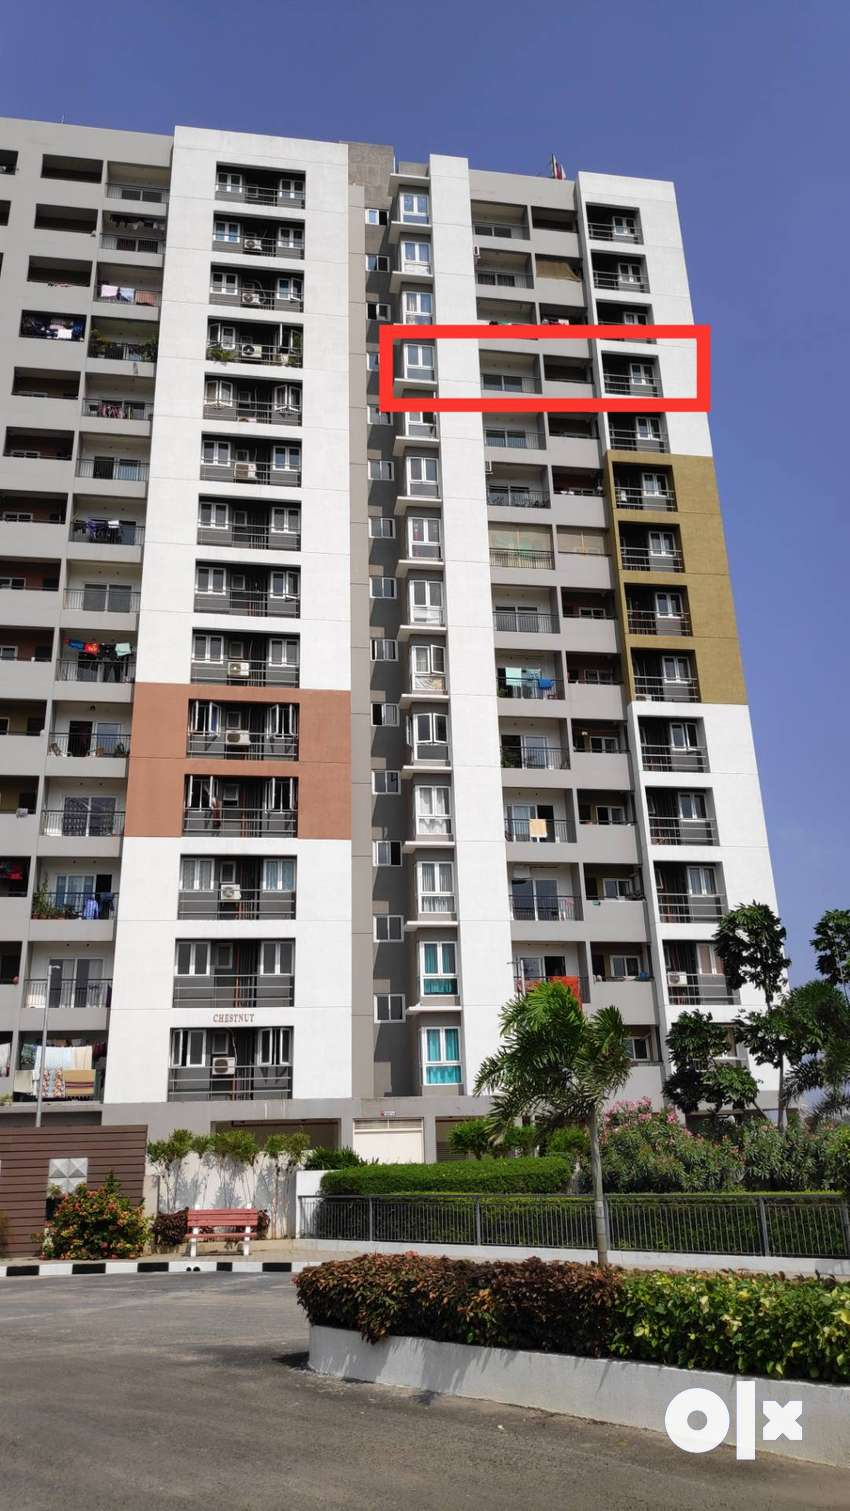 3BHK Luxury Flat for sale in Medavakkam 0